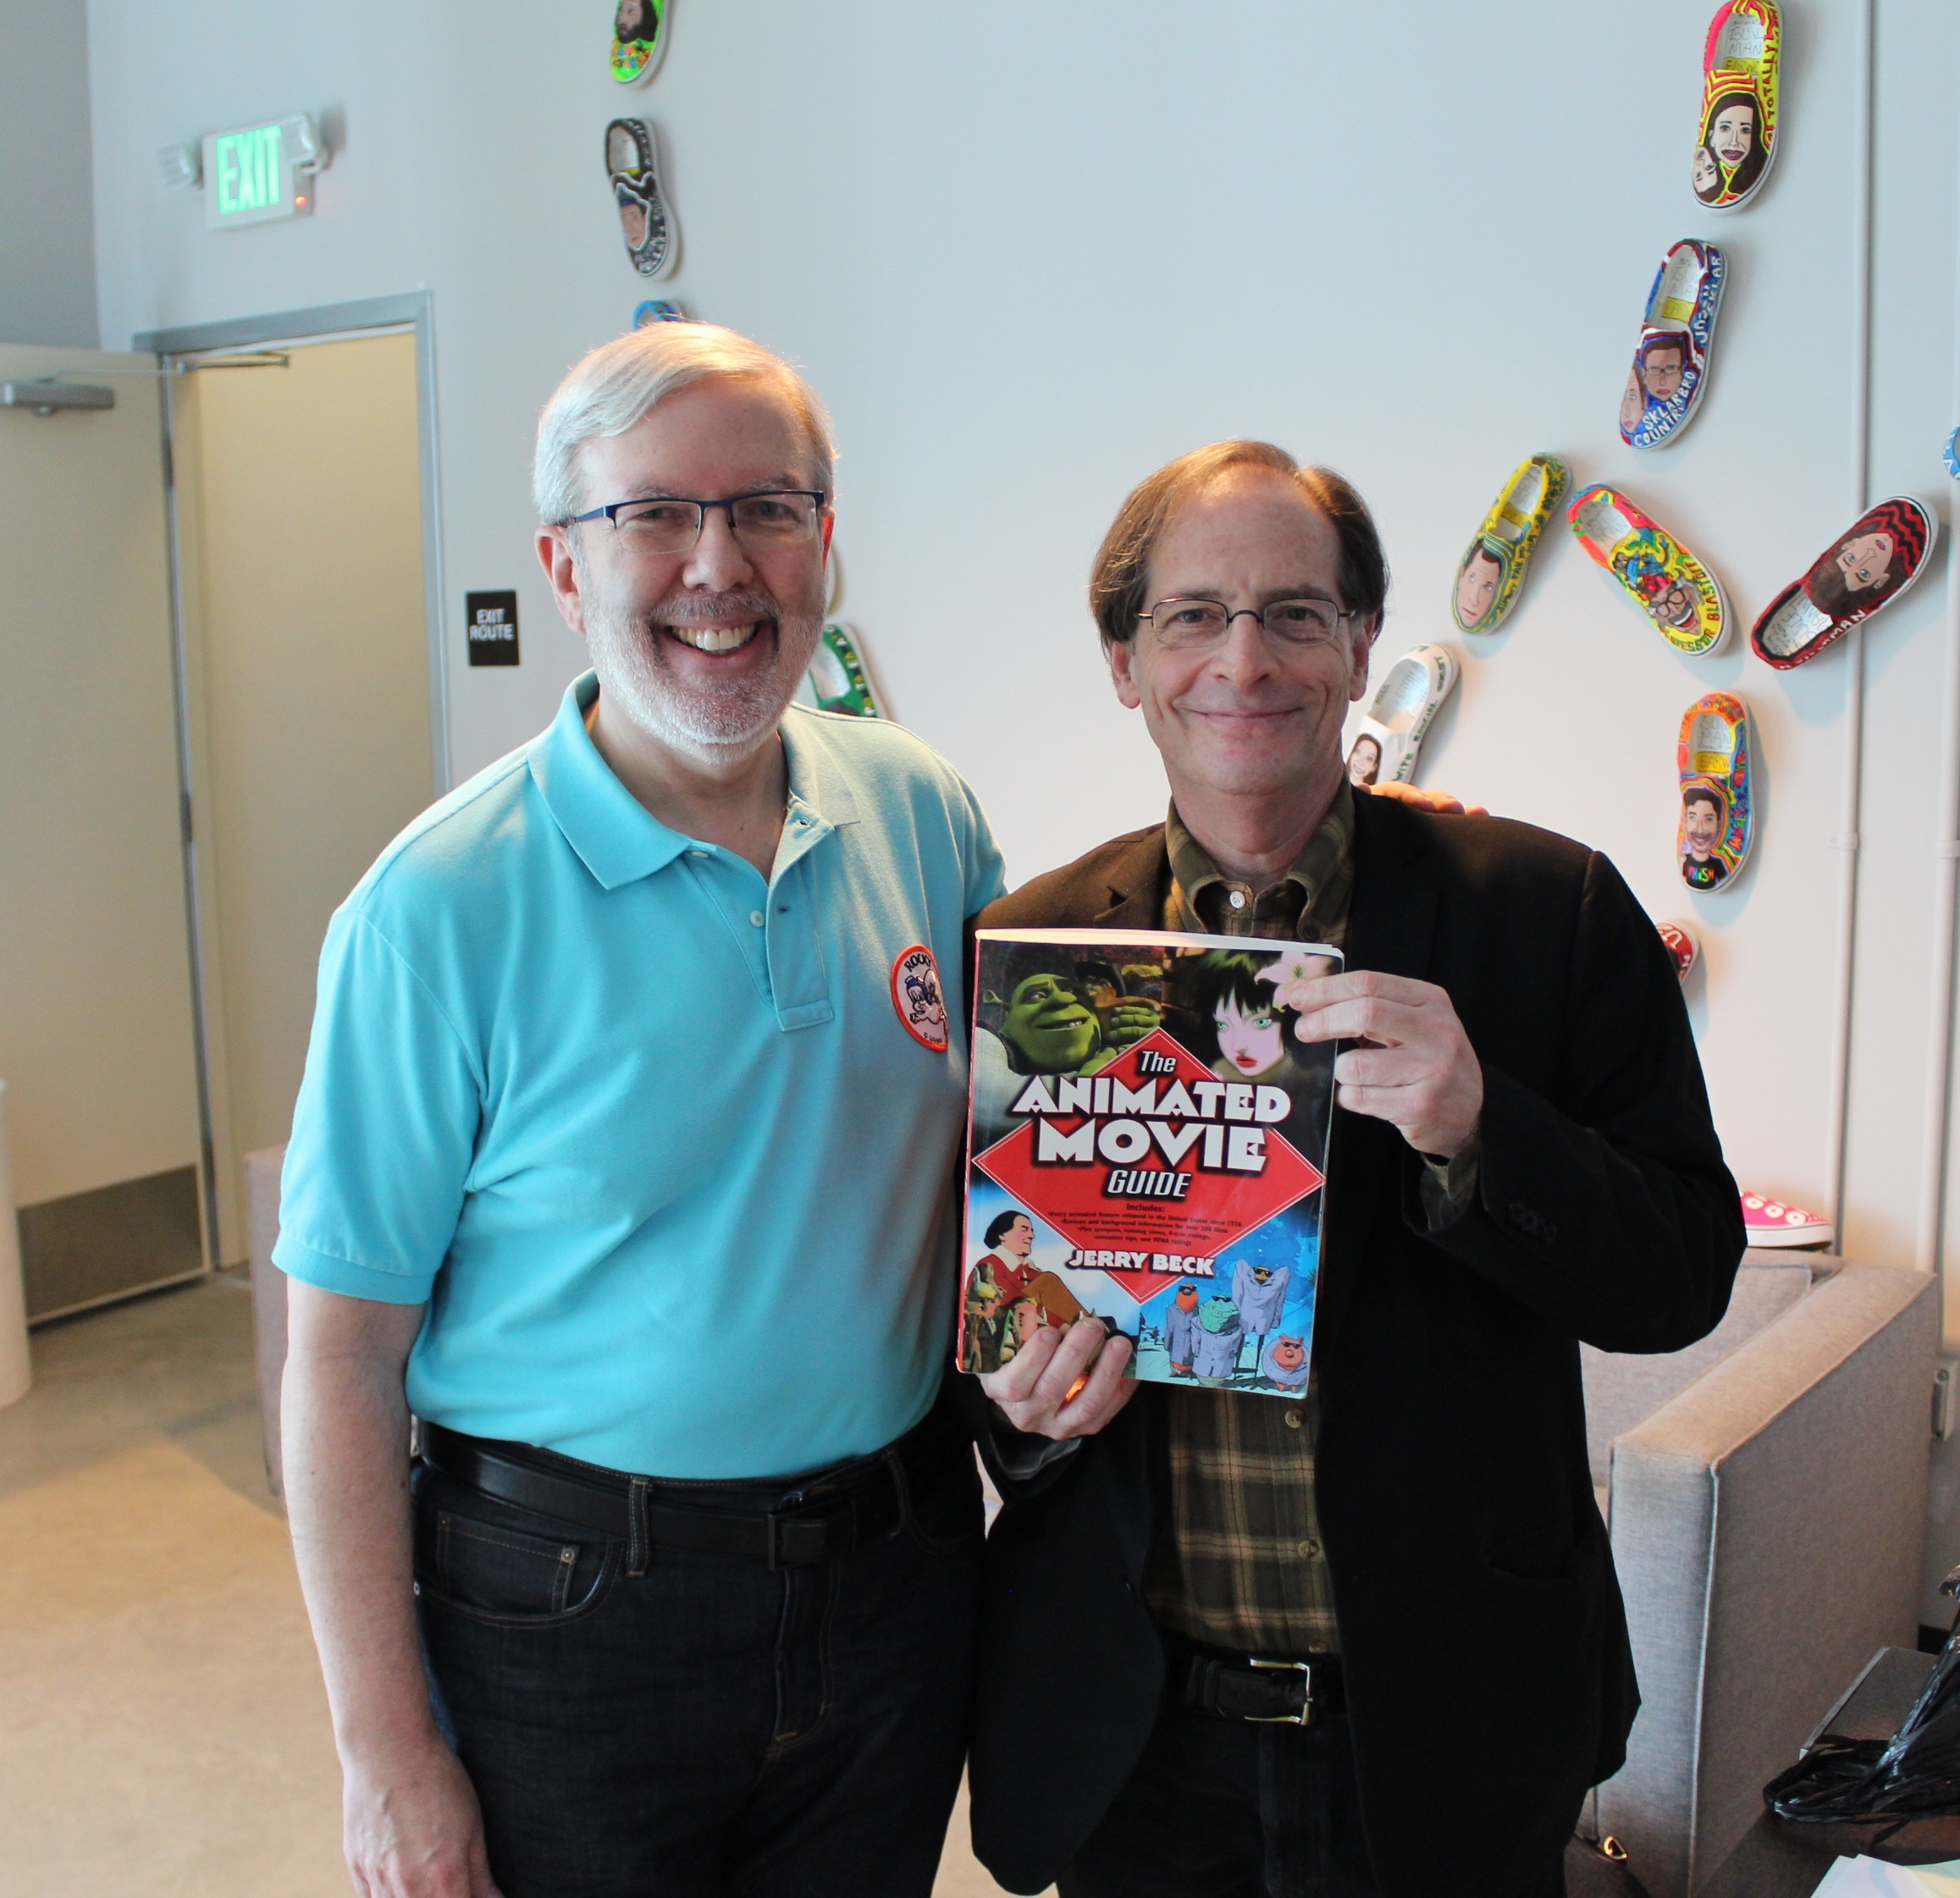 Jerry  Beck, episode of Maltin On #53 w/ Cartoons Animated